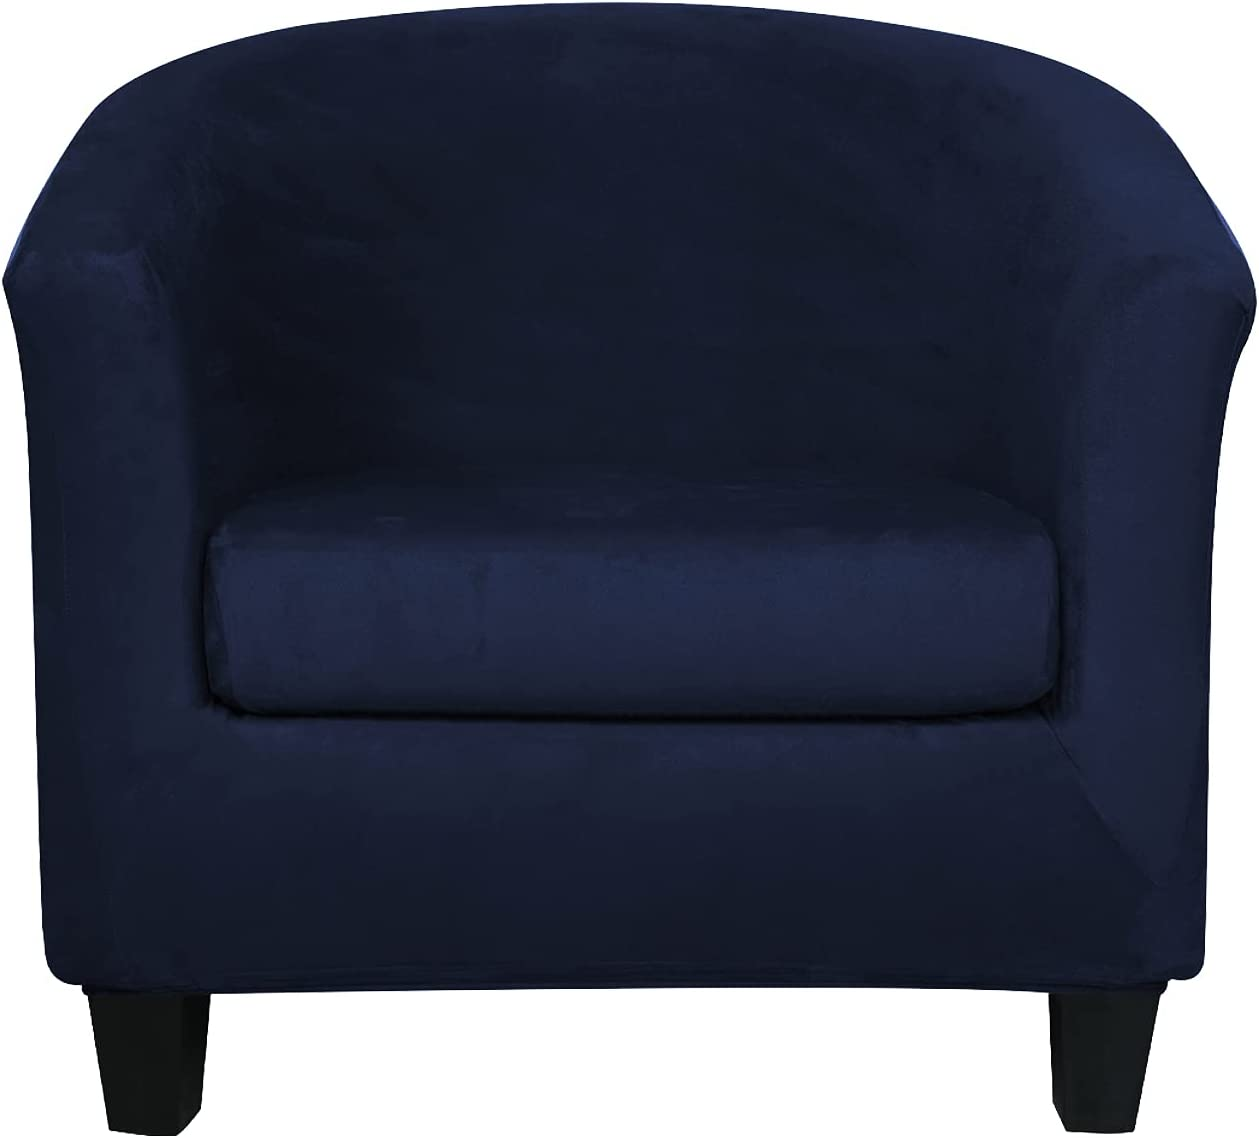 2 Pieces Velvet Tub Chair Covers with Cushion Cover Stretch Soft Removable Tub Chair Slipcovers Armchair Sofa Couch Furniture Protector for Living Room Club Bar Counter (Dark Blue)